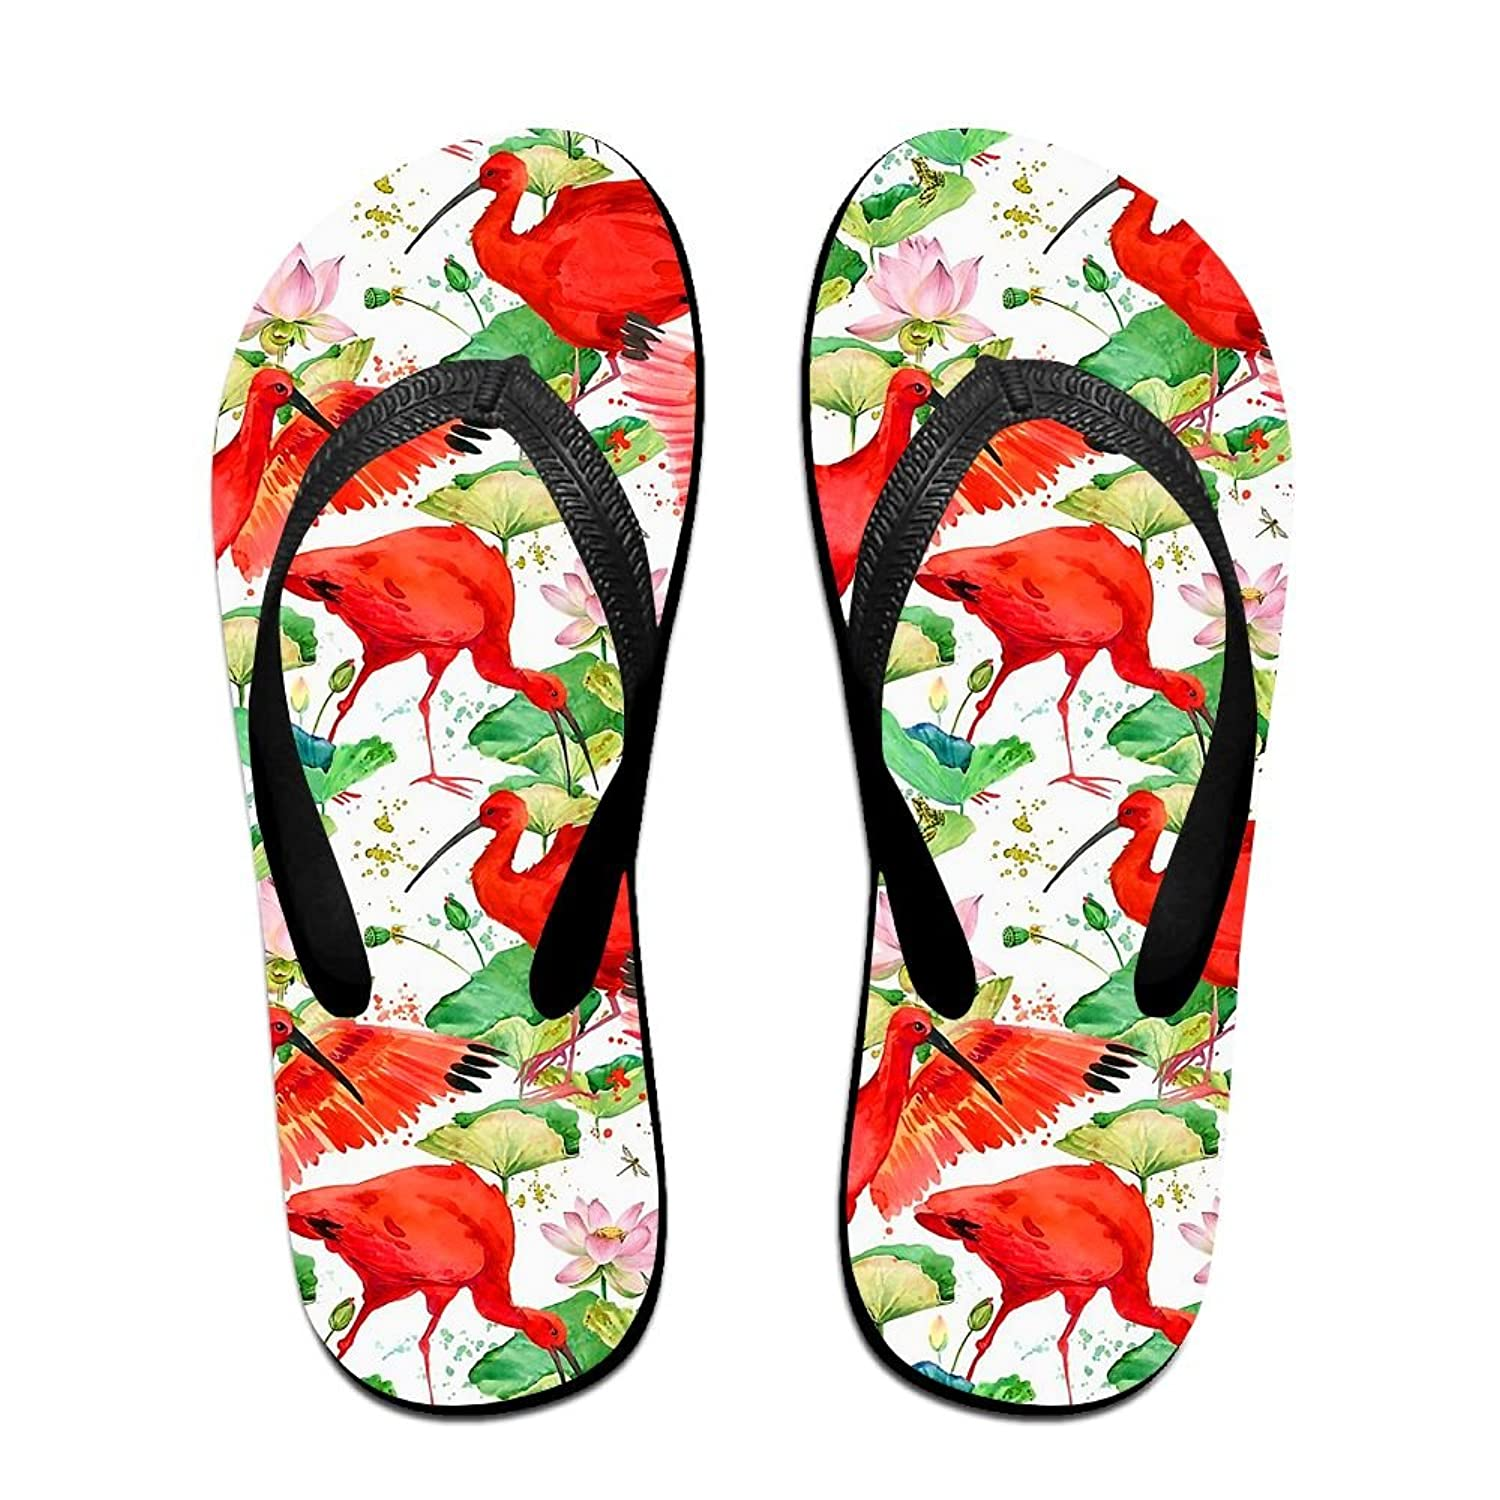 639223ed2a61 Flaming Flamingos Flip Flops Fashion Sandals Multicolored Homewear Slippers  For Men Women